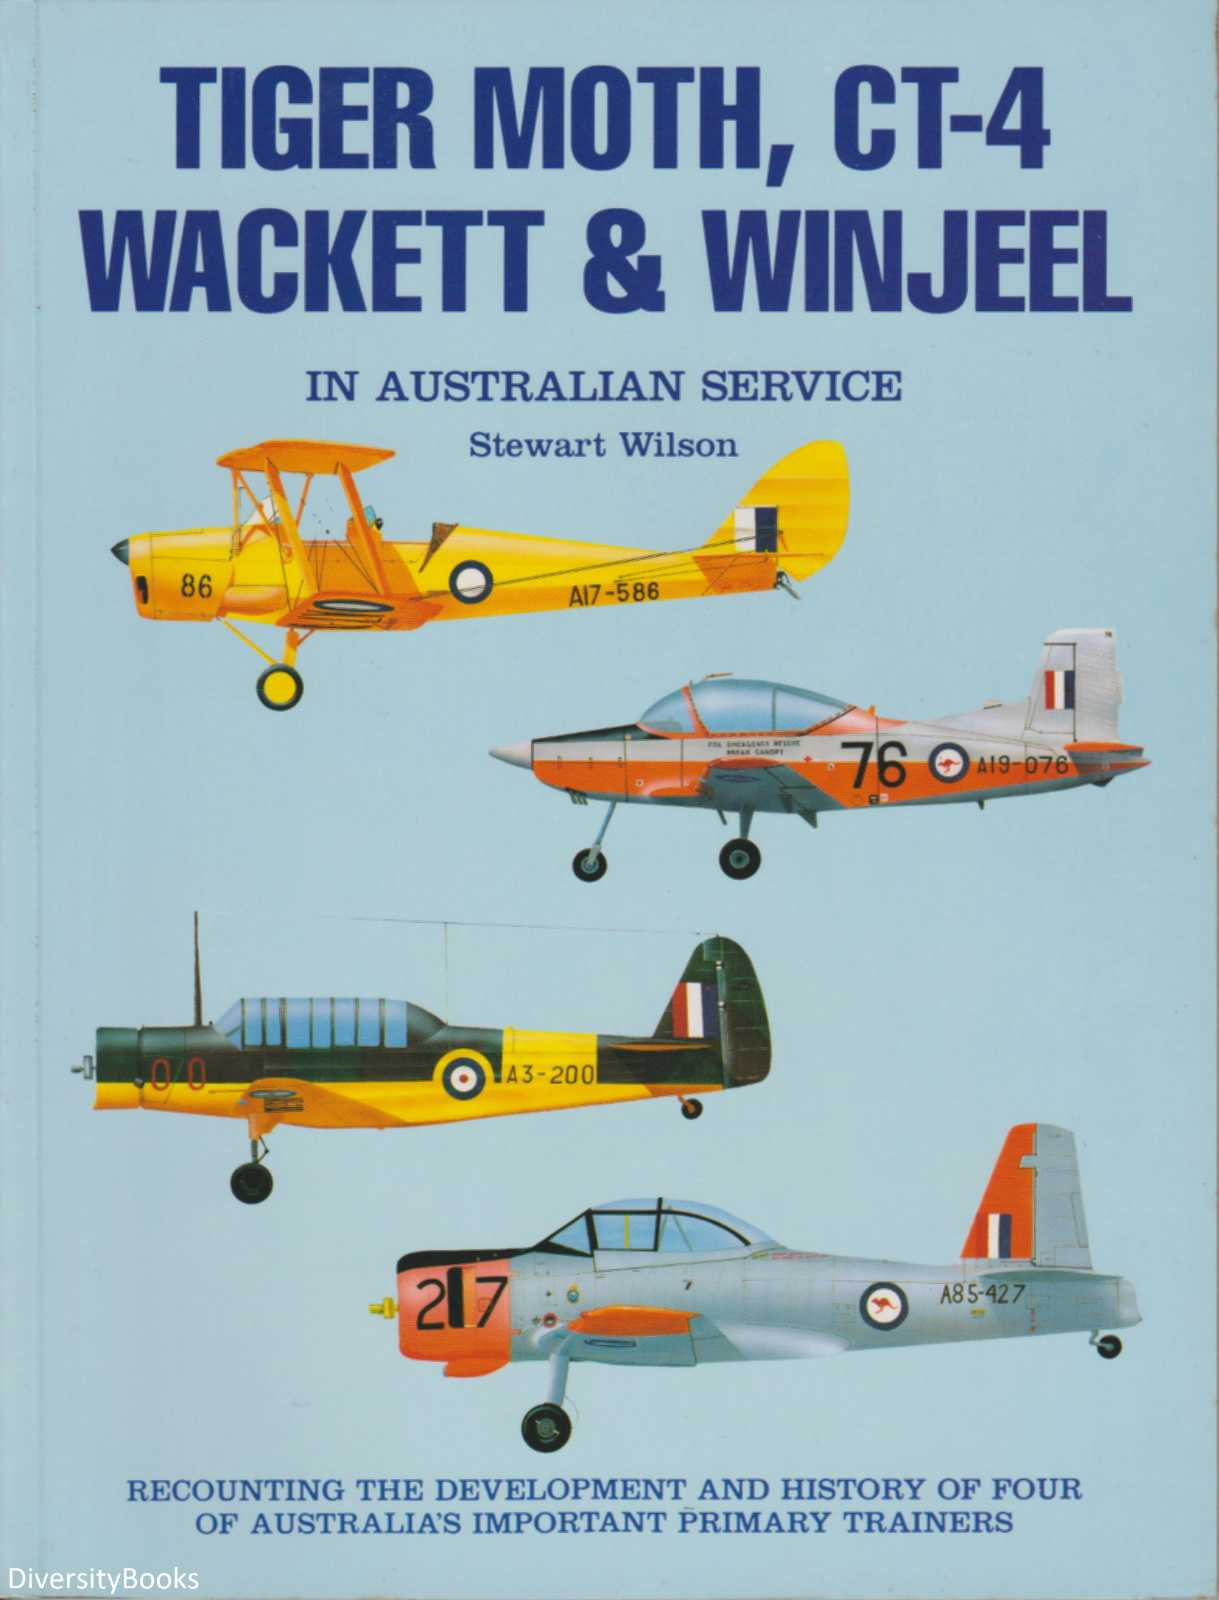 Image for TIGER MOTH, CT-4, WACKETT & WINJEEL IN AUSTRALIAN SERVICE